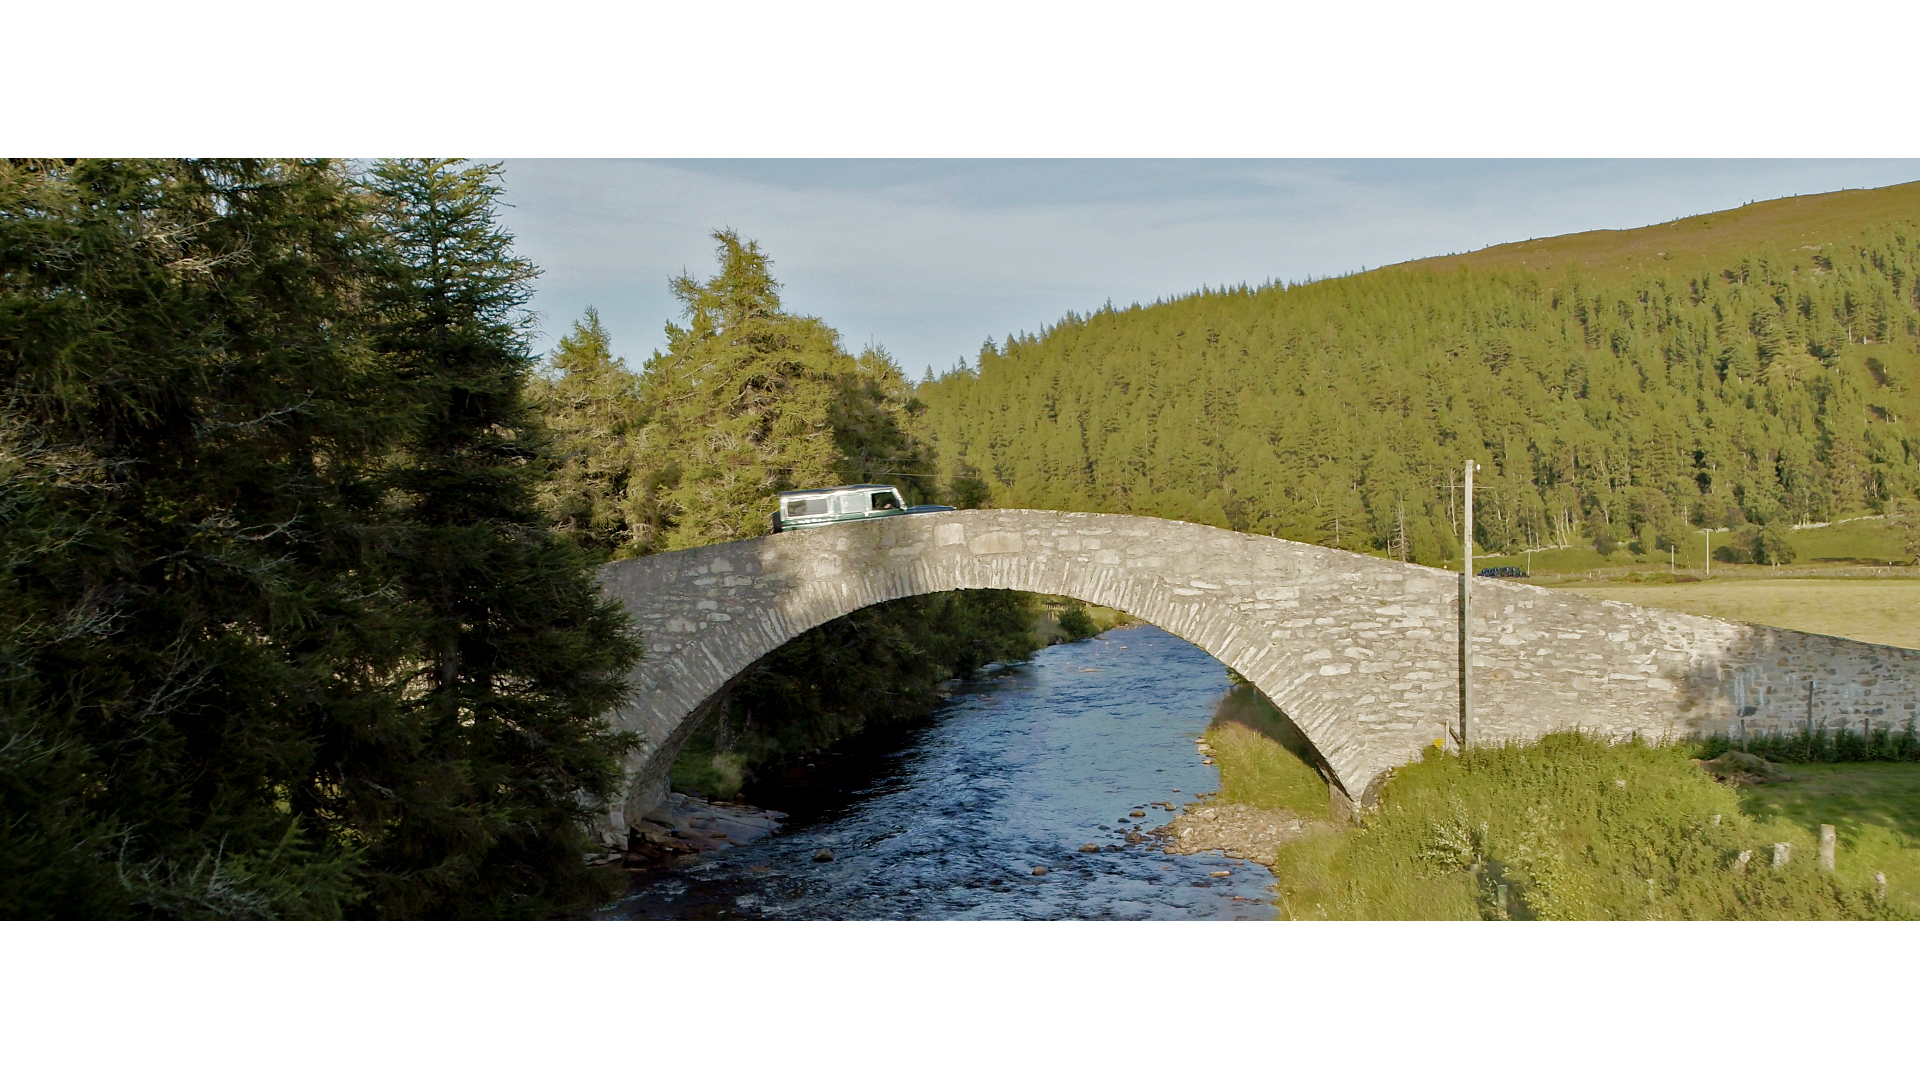 Bearsden landy on bridge.jpg